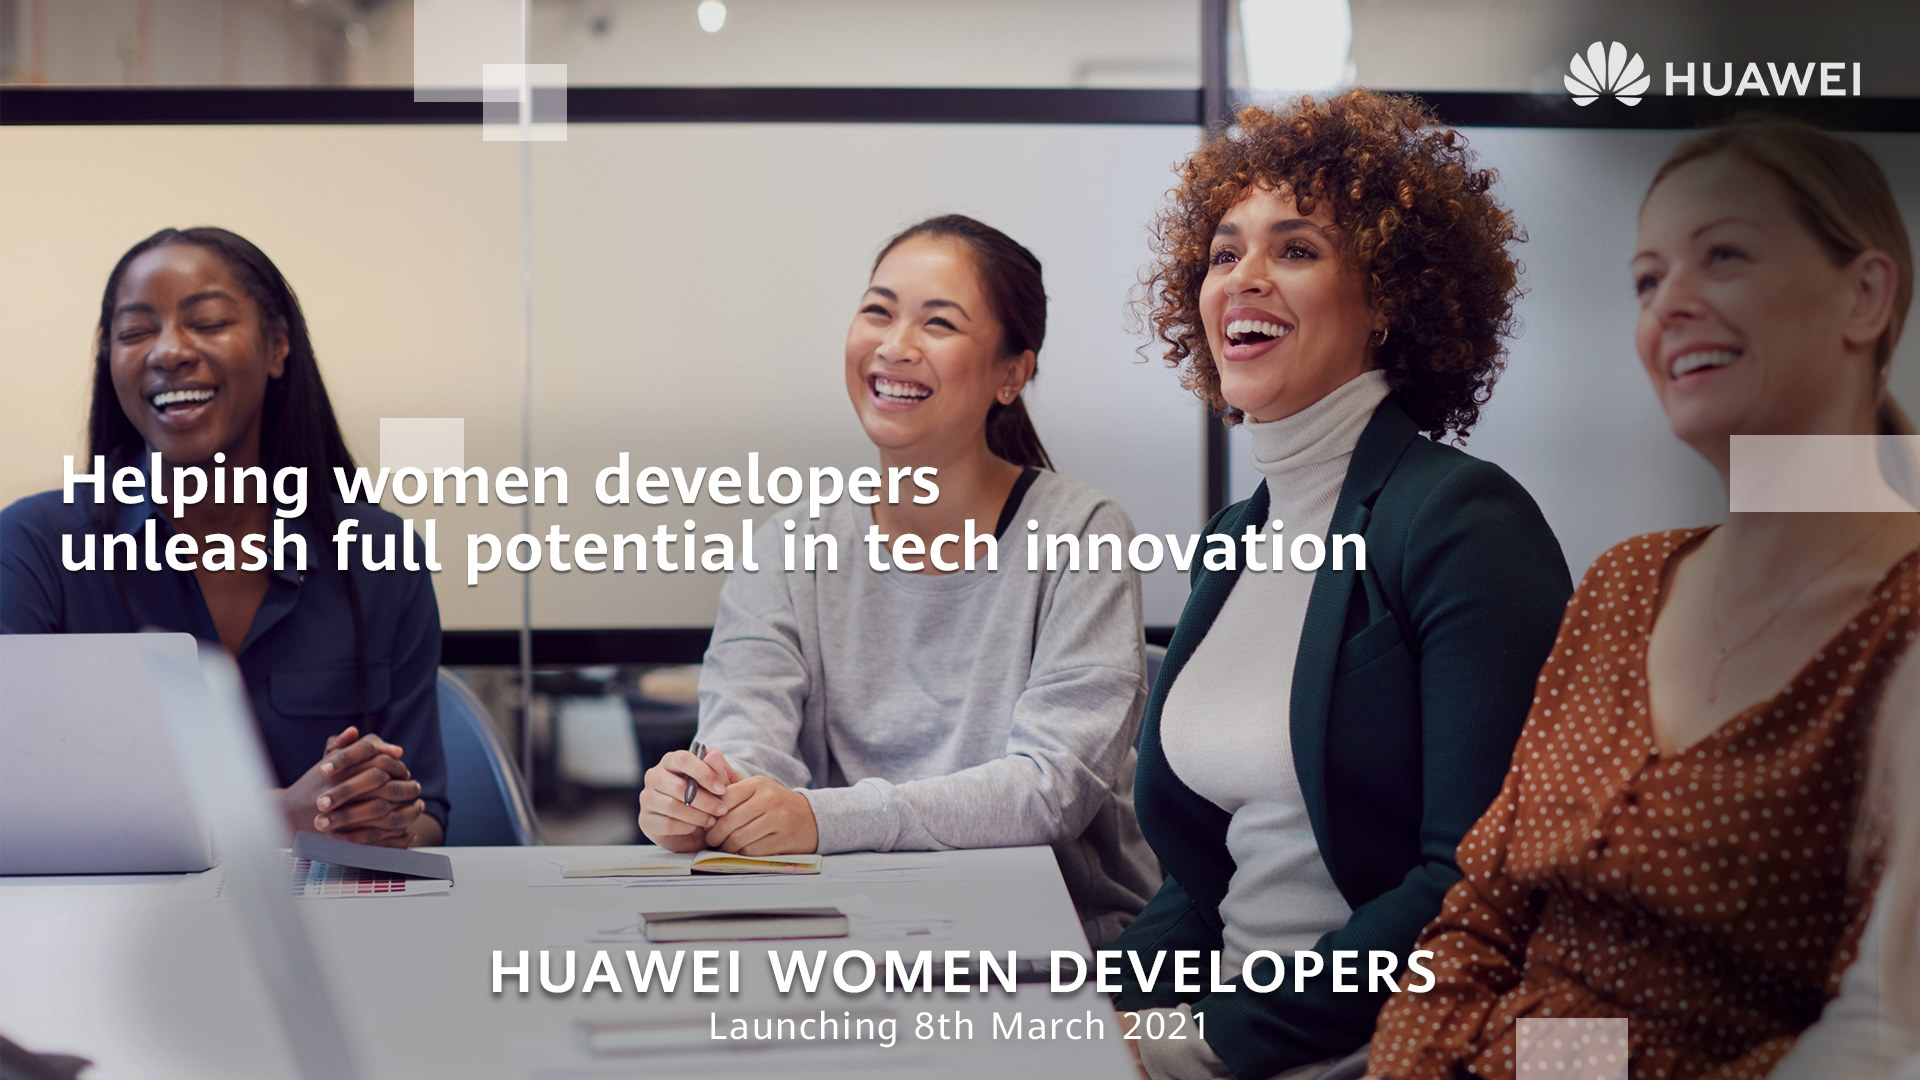 Today we are announcing the launch of our newest initiative, HUAWEI Women Developers!